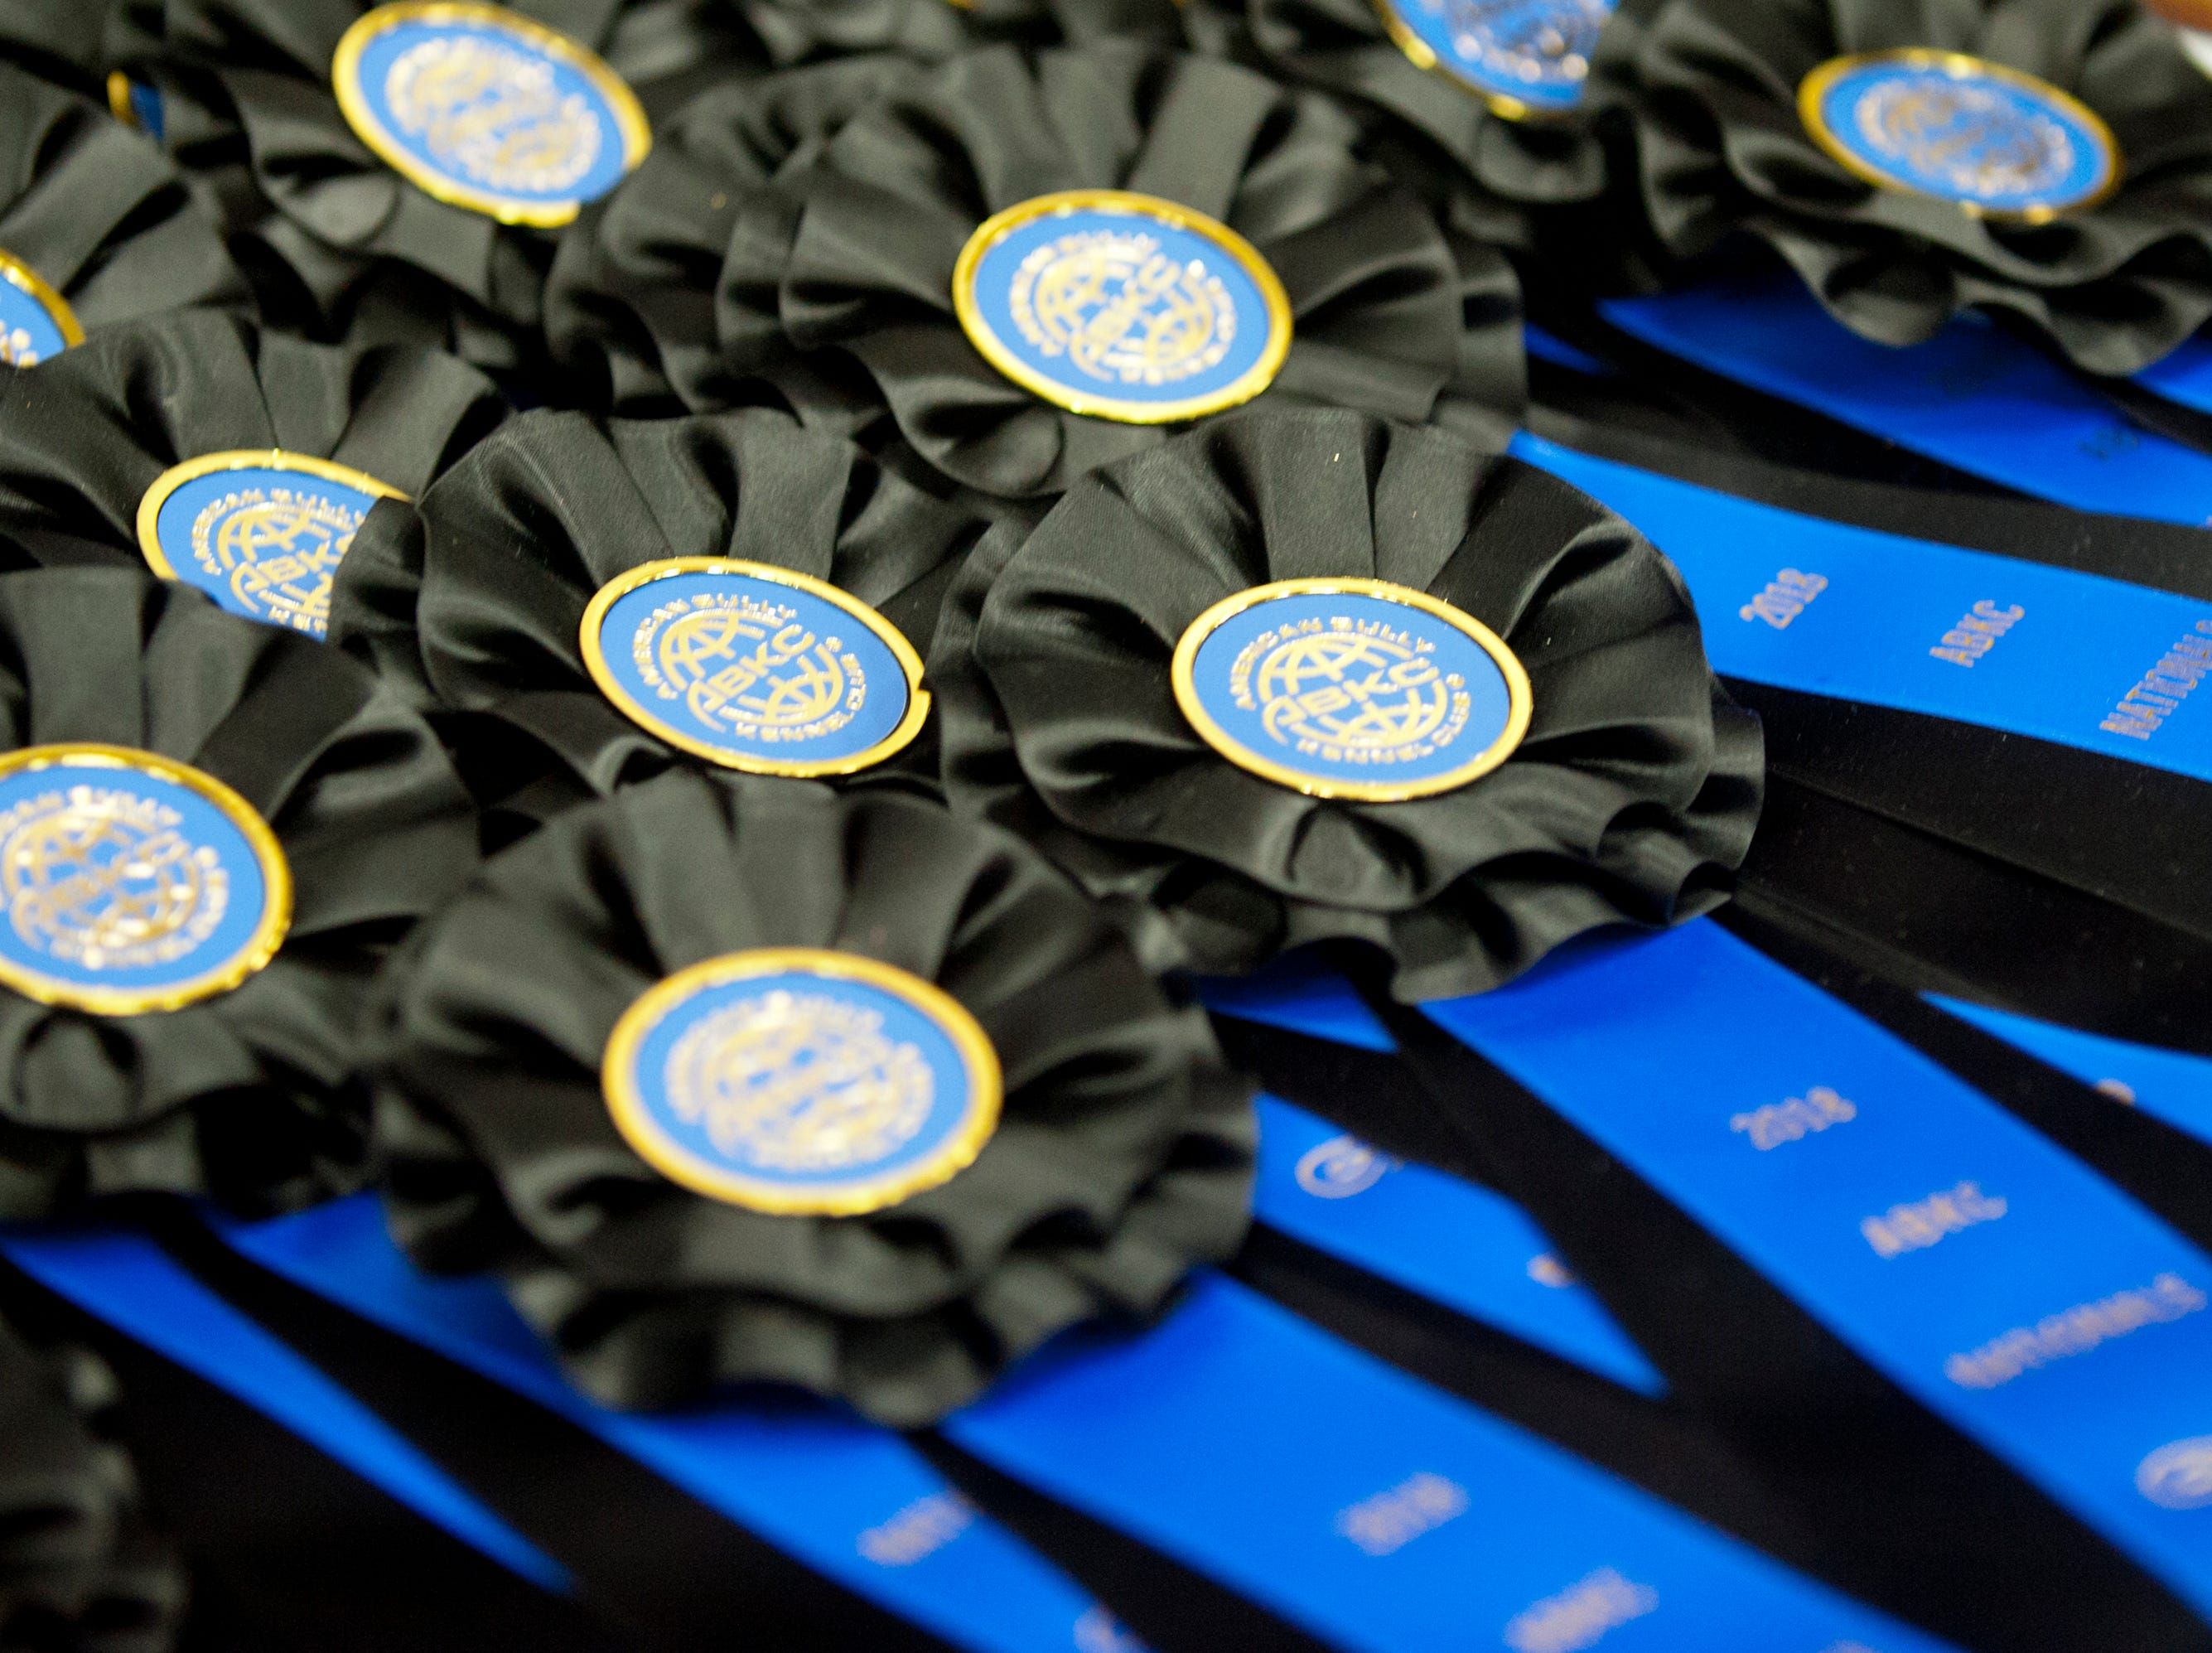 Detail of blue ribbons at the 2018 American Bully Kennel Club's 12th annual confirmation event at the Kentucky Convention Center in Louisville.November 10, 2018